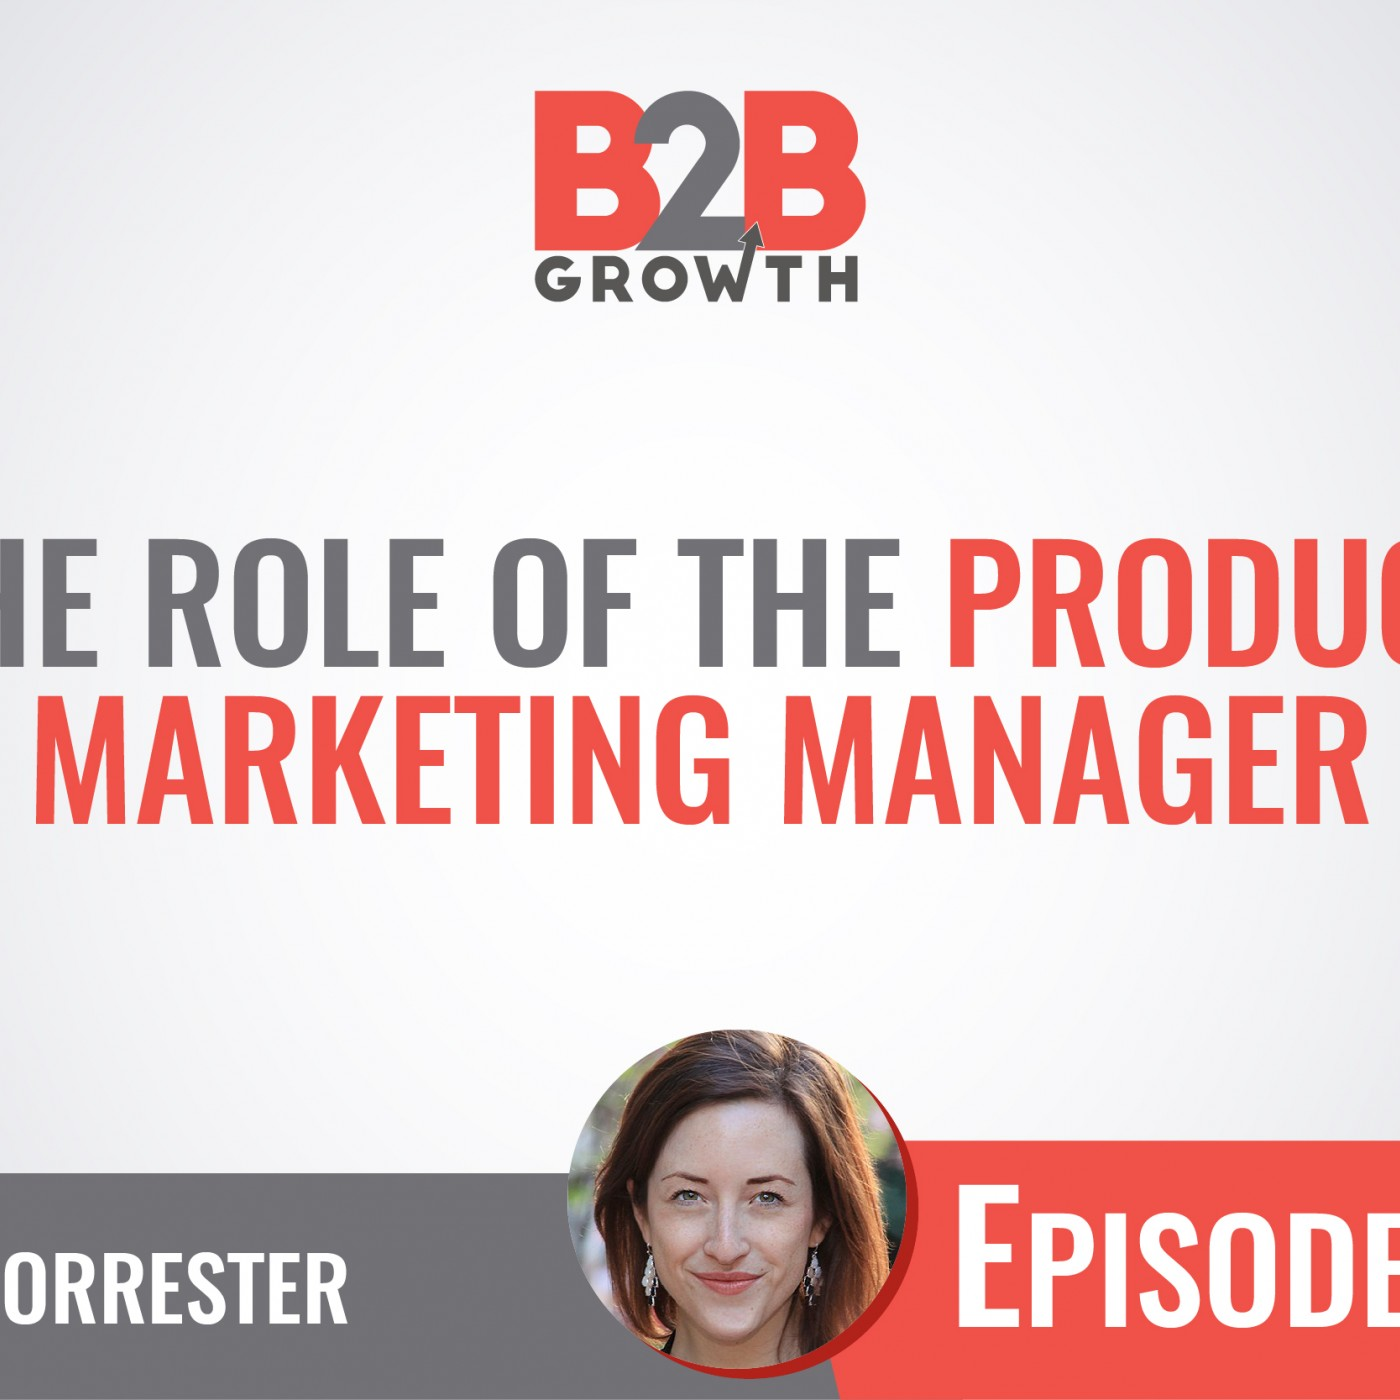 560: The Role of the Product Marketing Manager w/ Jess Forrester